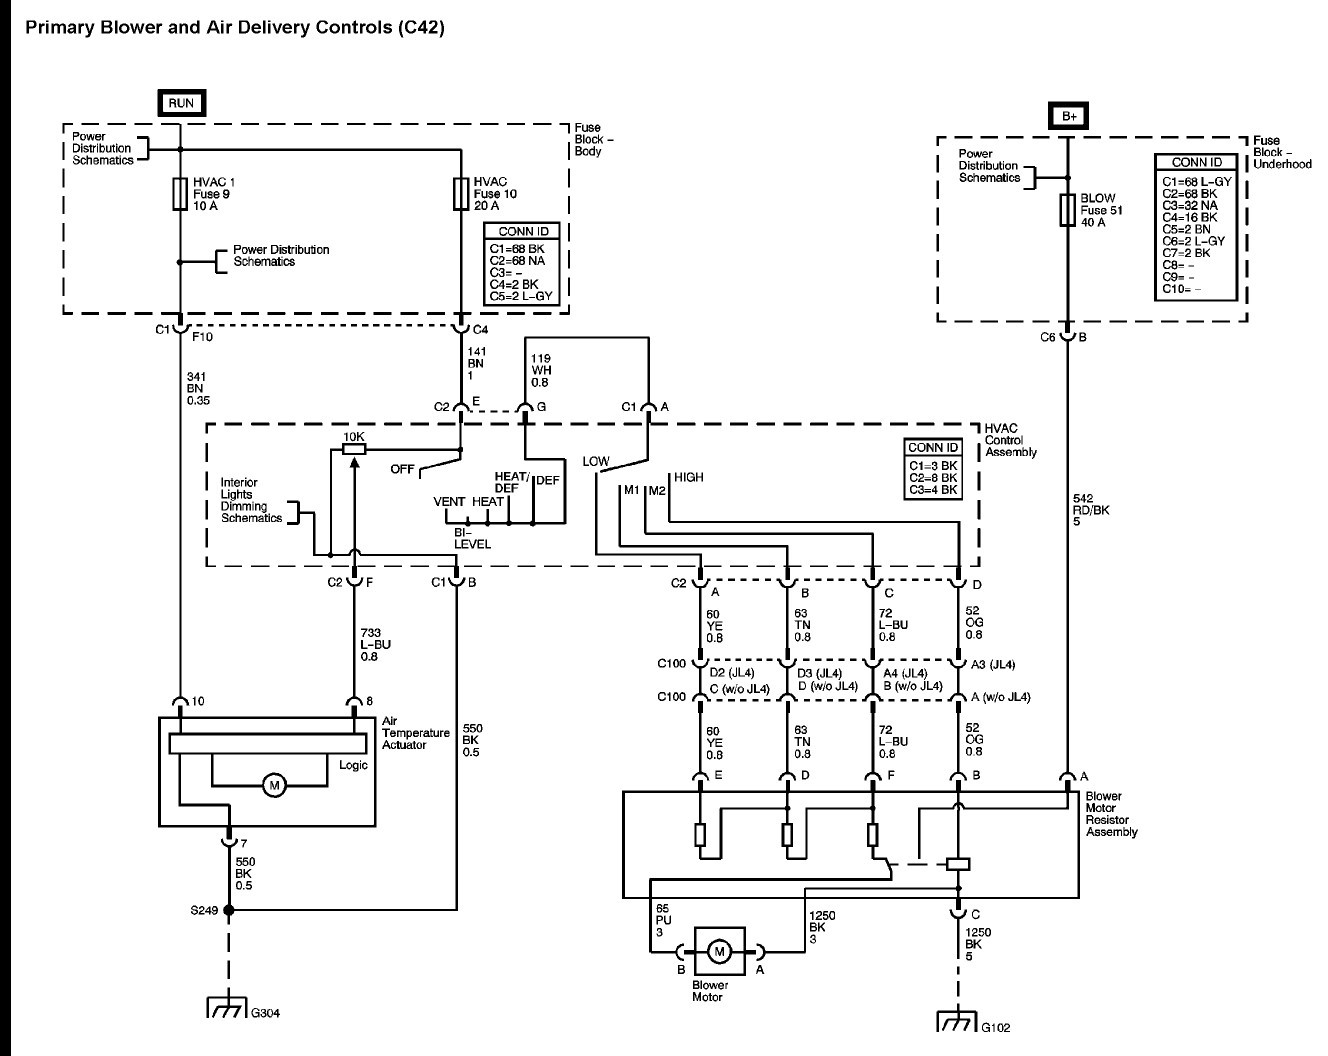 Chevy Express Van Wiring Diagrams Electrical Diagram Schematics Chevrolet Equinox Detailed 2003